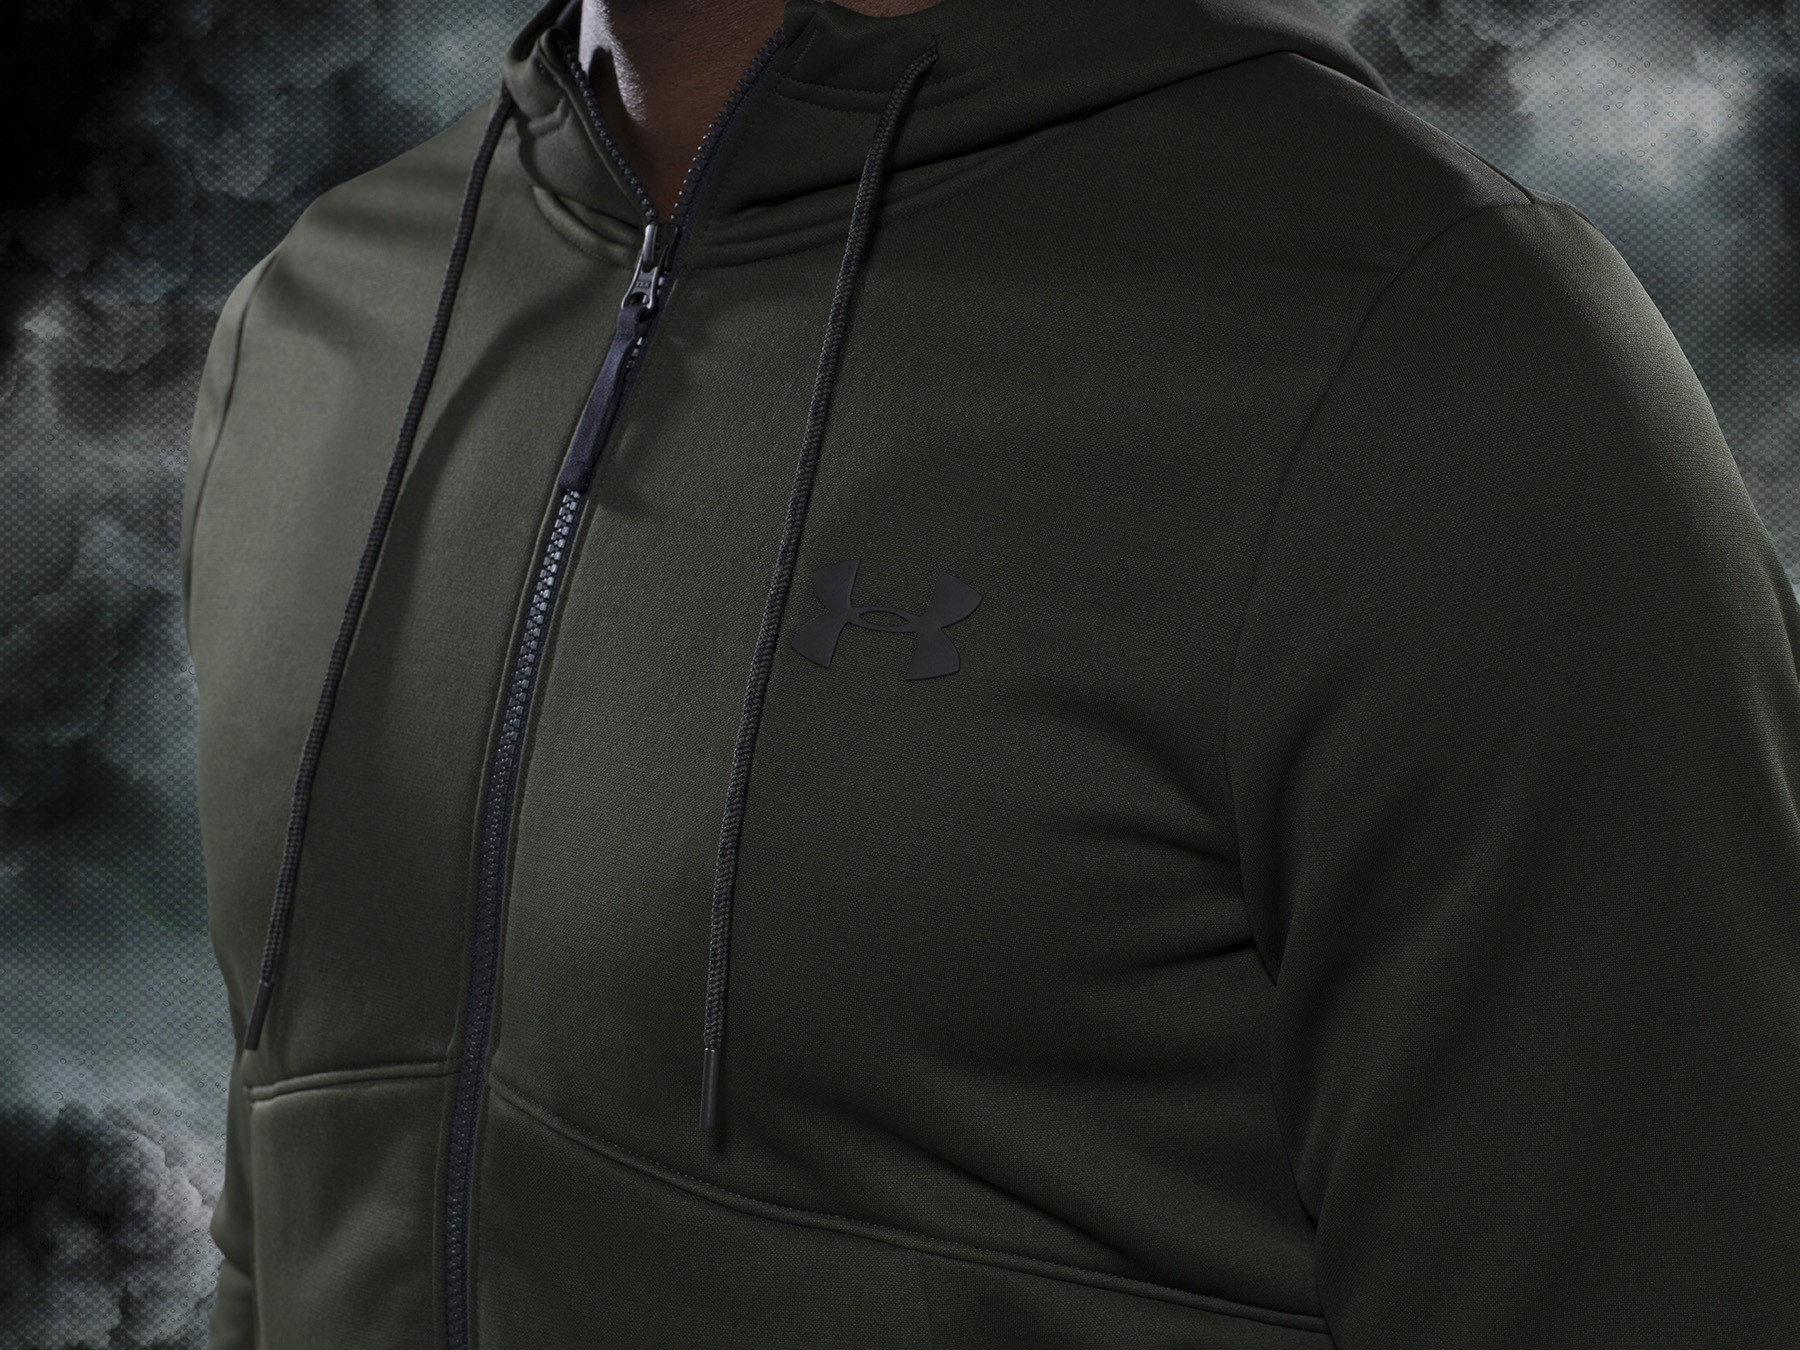 olive green under armour track top on a stormy background